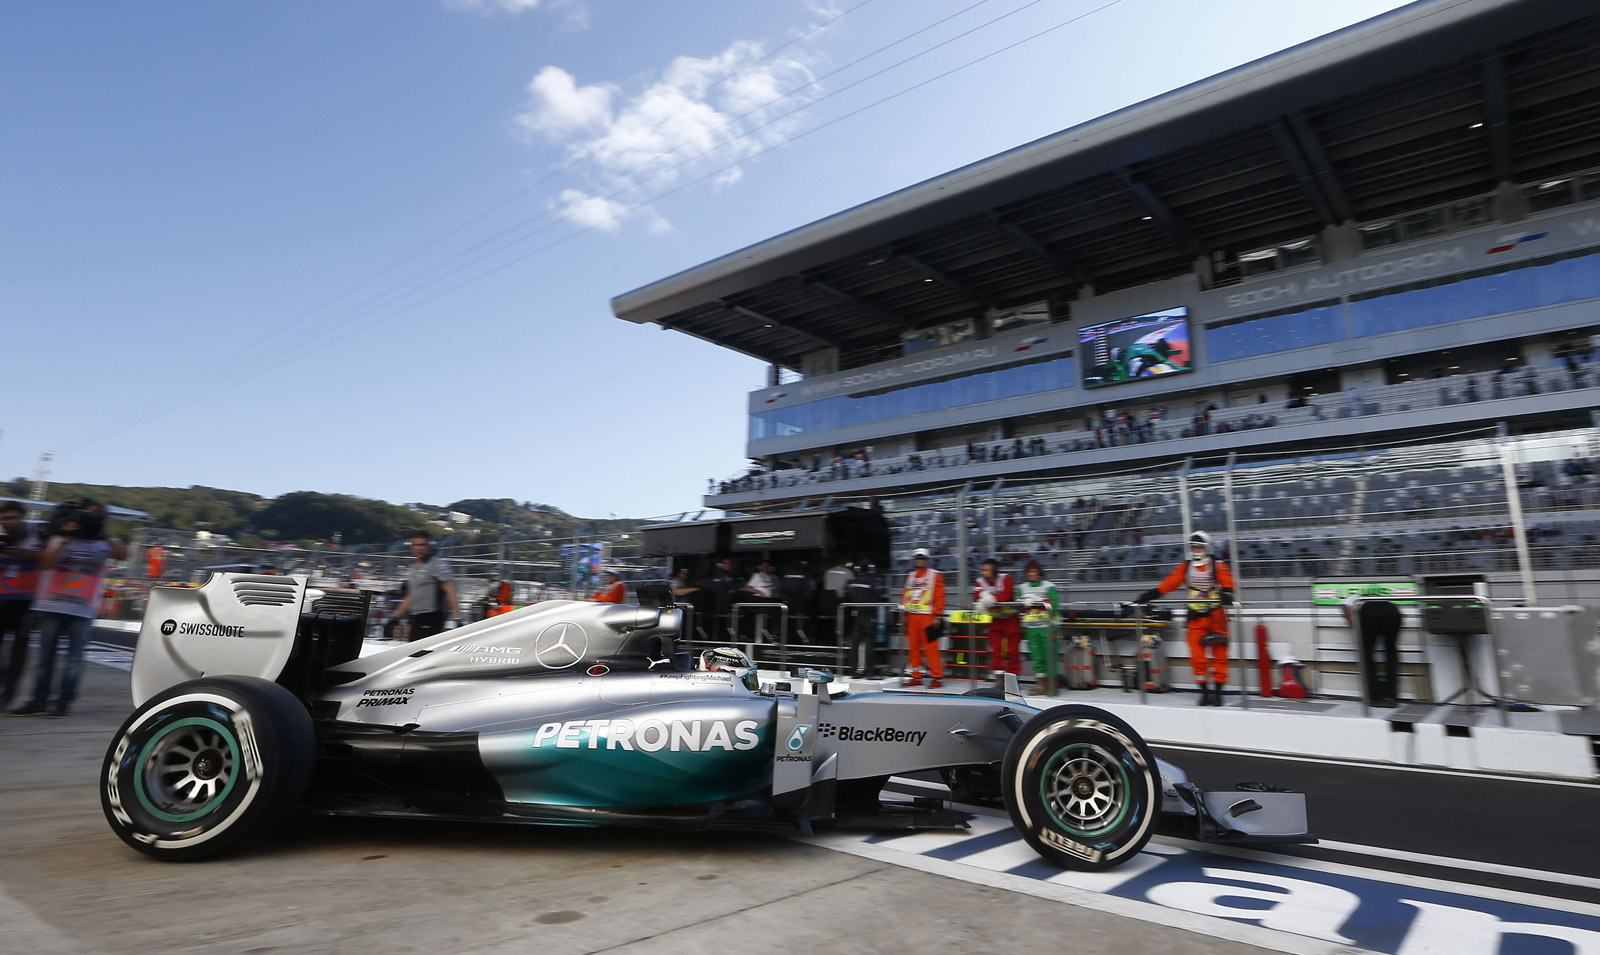 hamilton edges out rosberg for 2014 formula one russian grand prix pole. Black Bedroom Furniture Sets. Home Design Ideas